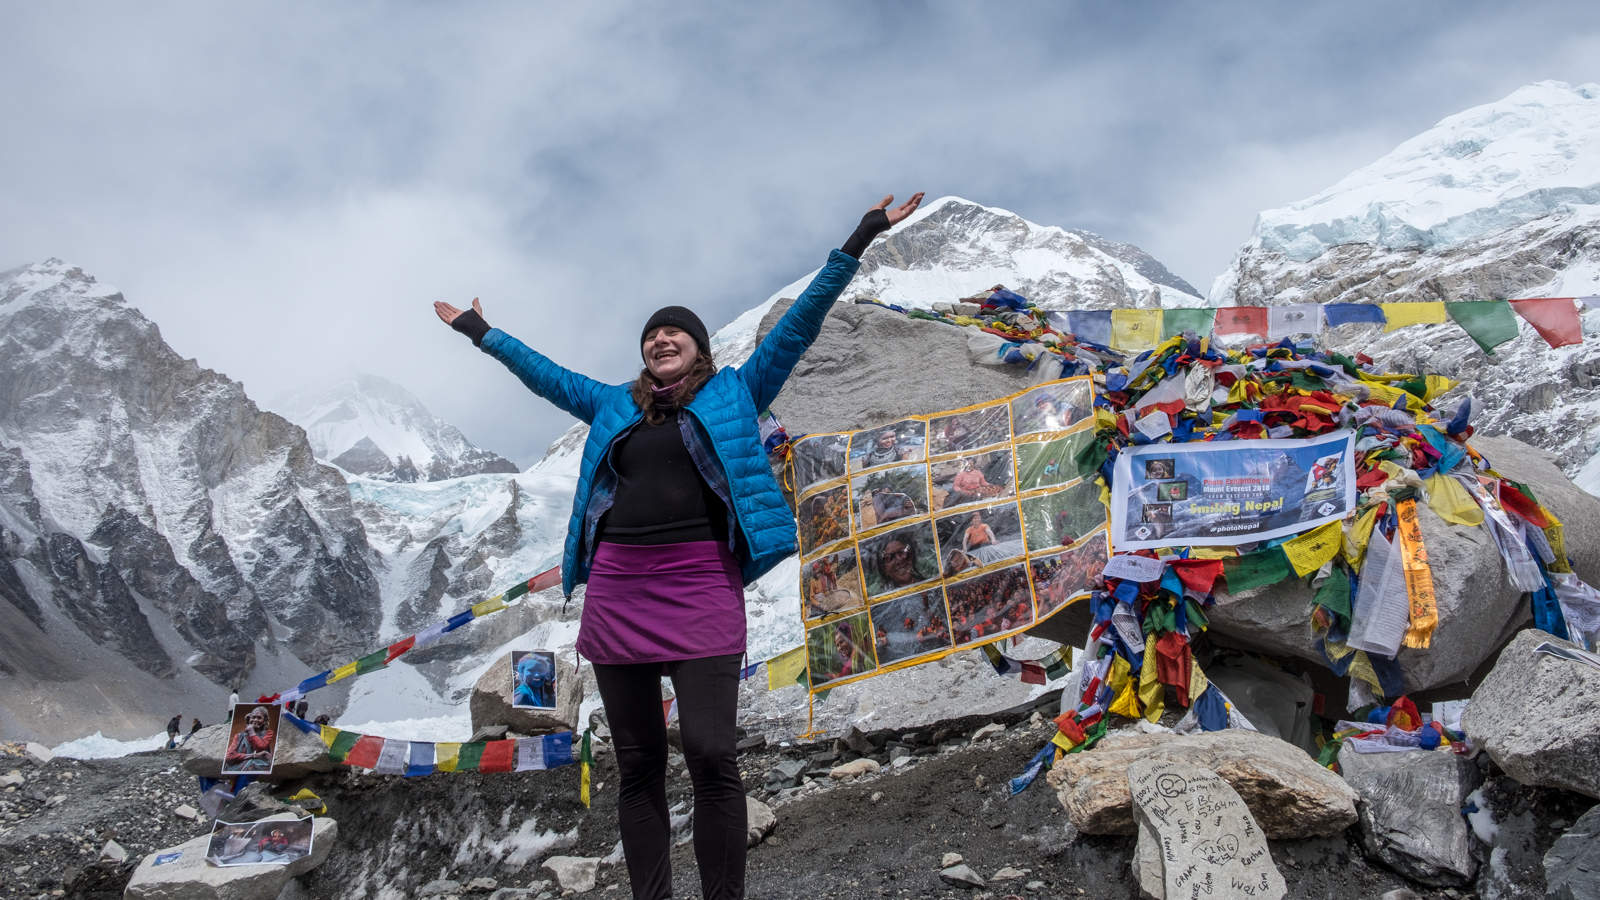 Mount Everest mo-fo'in Base Camp!